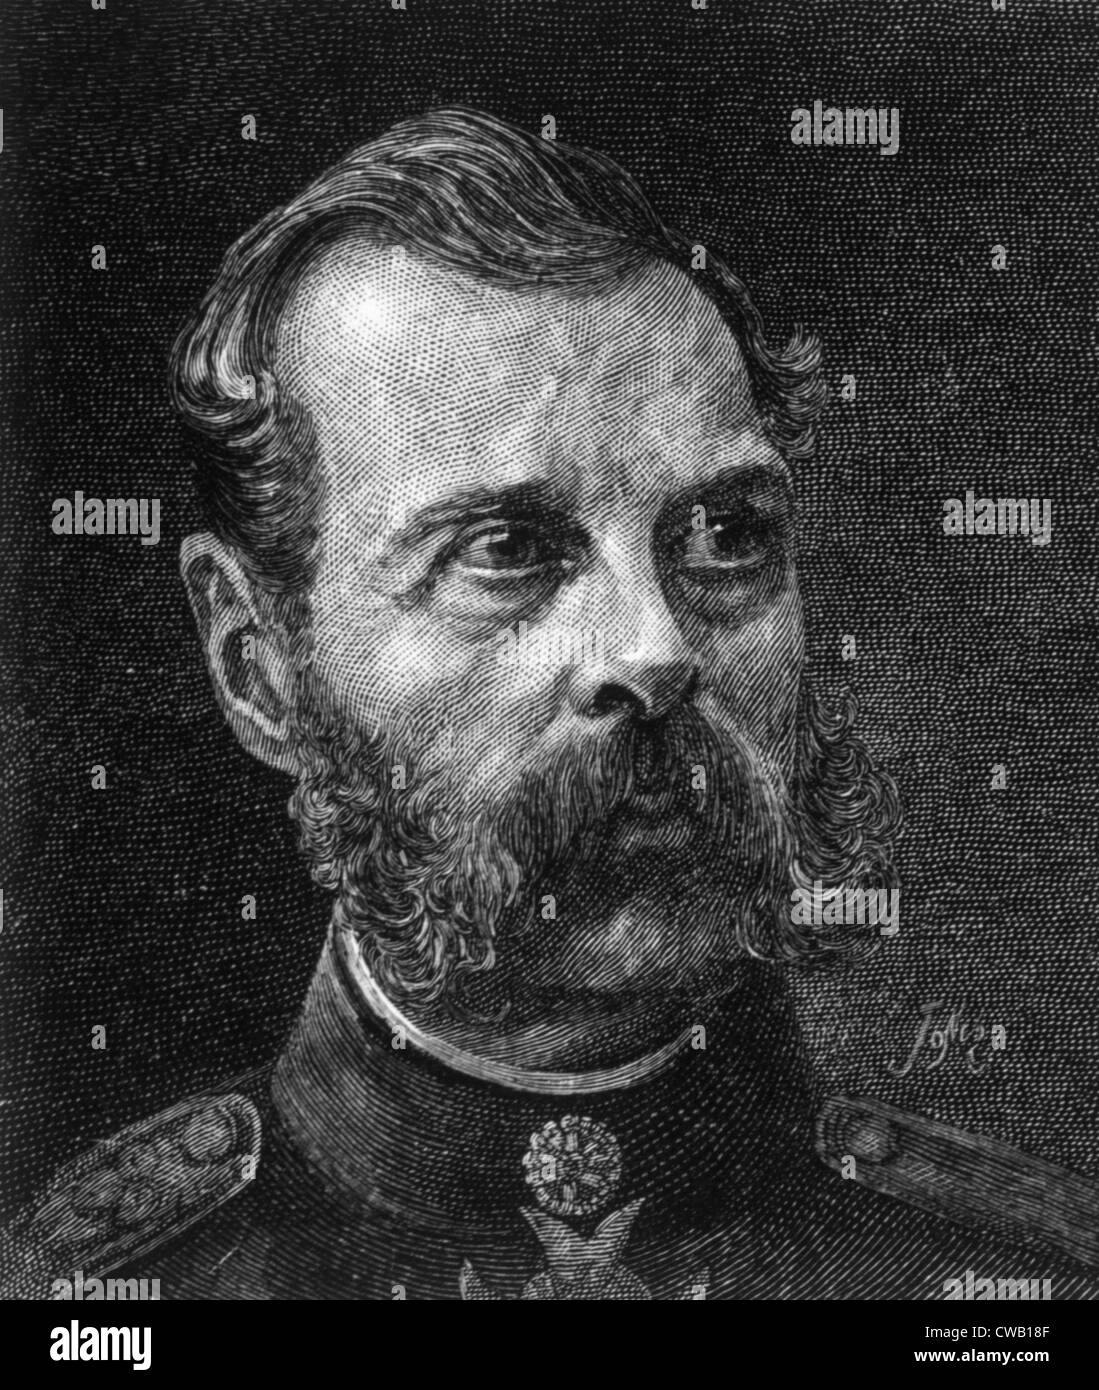 the czars of russia alexander ii What marriage connected the british royal family with the russian czars to nicholas ii of russia (3) tsar alexander ii asked for alix first.